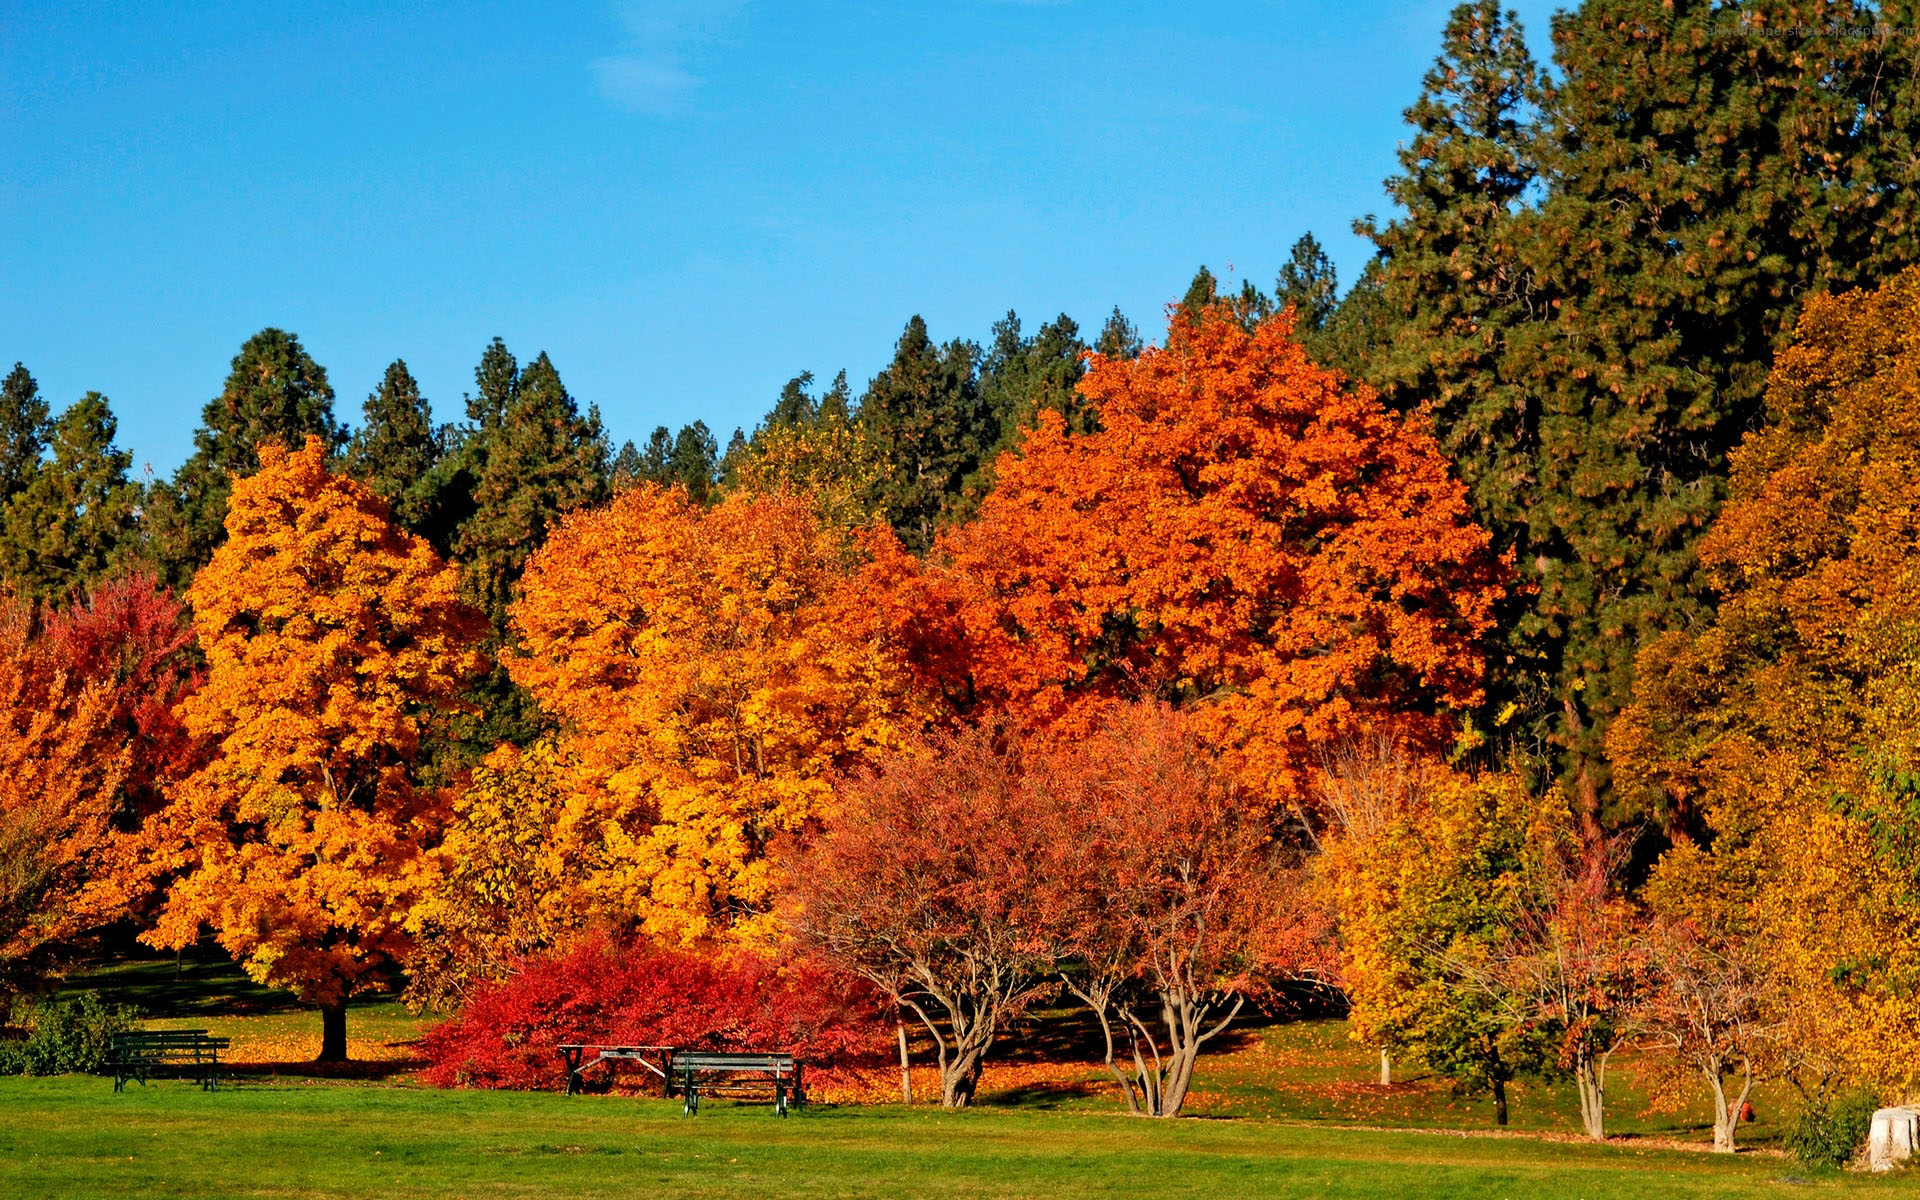 Download Autumn Colors Wallpaper | Free Wallpapers